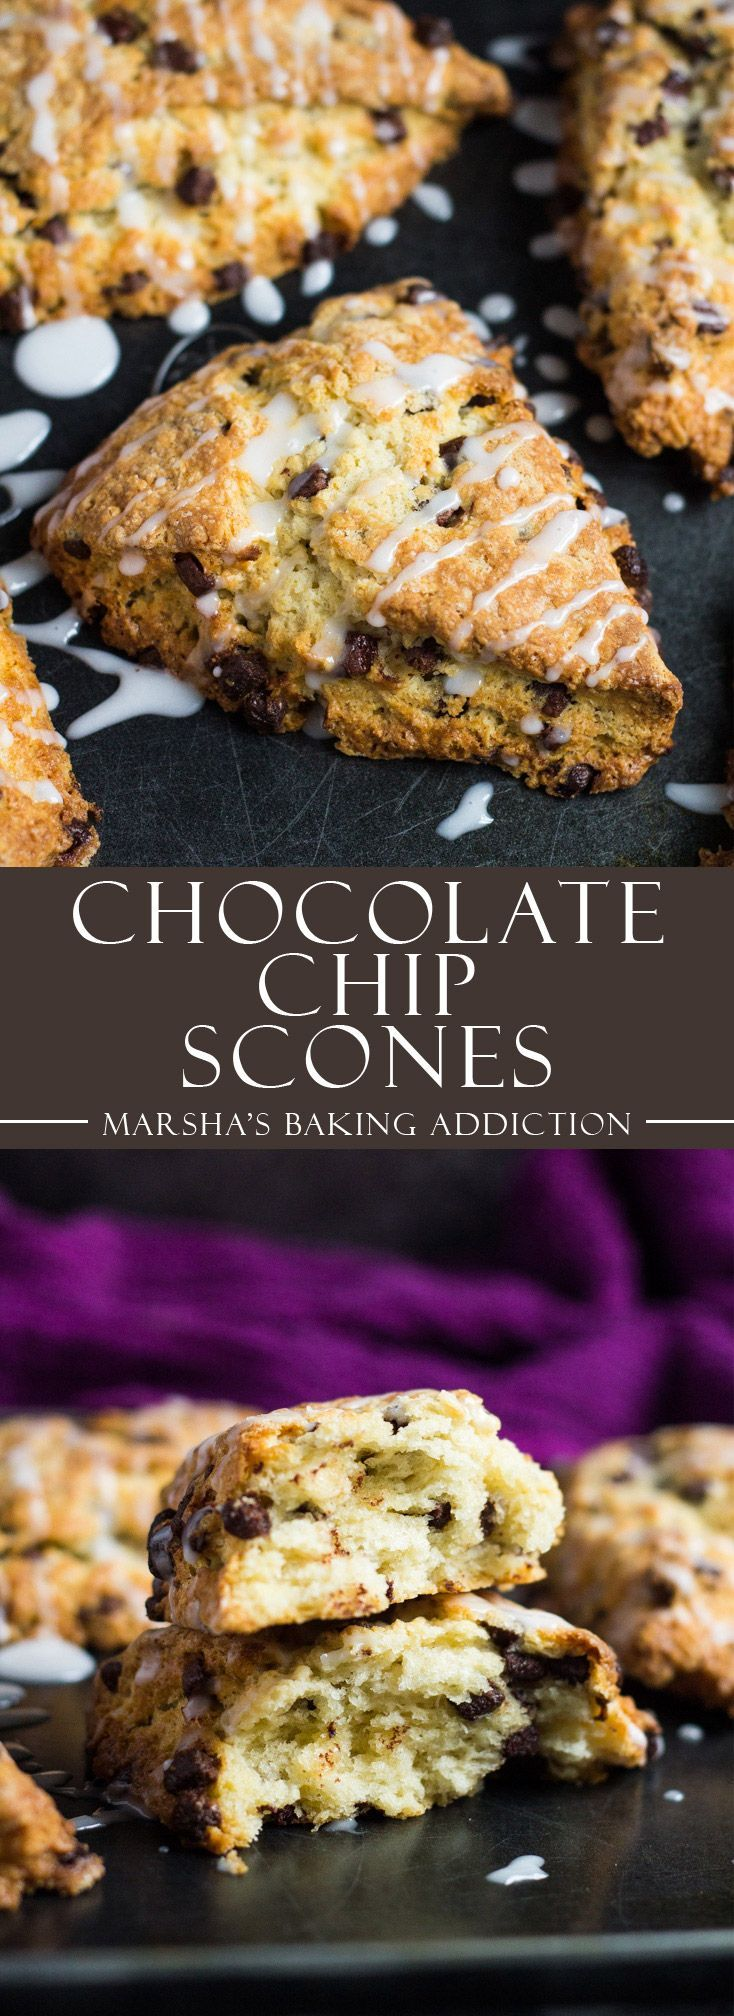 Chocolate Chip Scones | http://marshasbakingaddiction.com /marshasbakeblog/